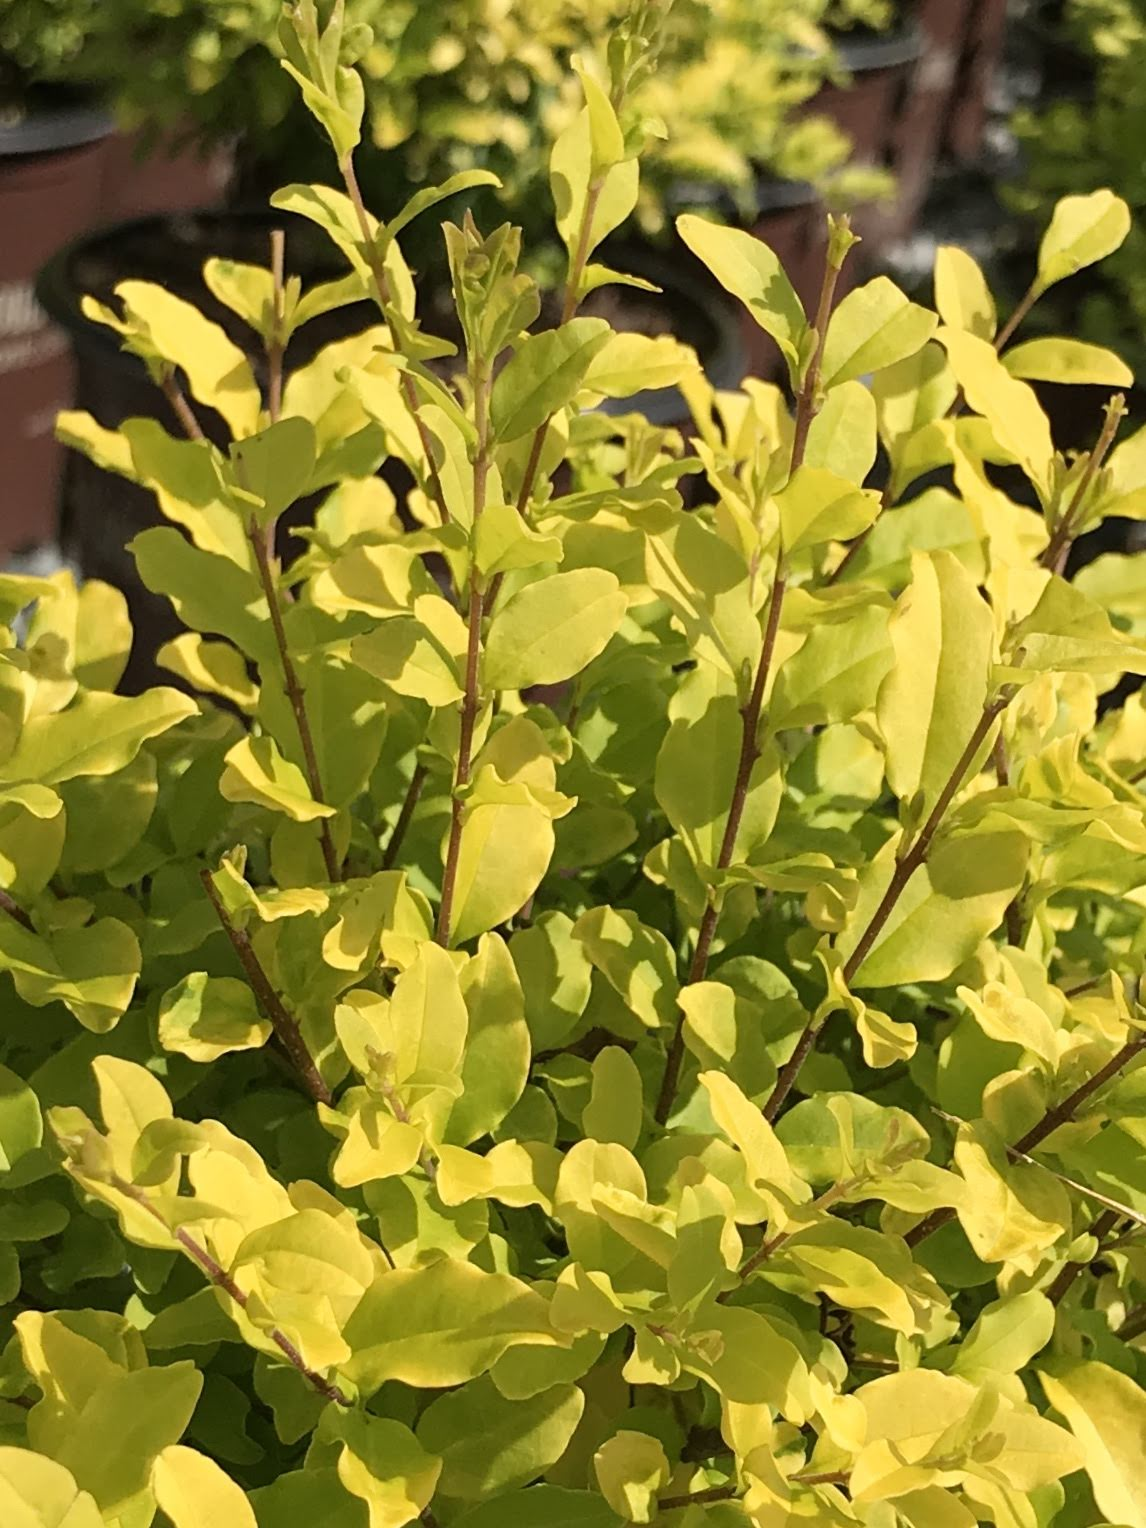 Ligustrum sinense 'Sunshine', Southern Living Sunshine Ligustrum 3 gallon